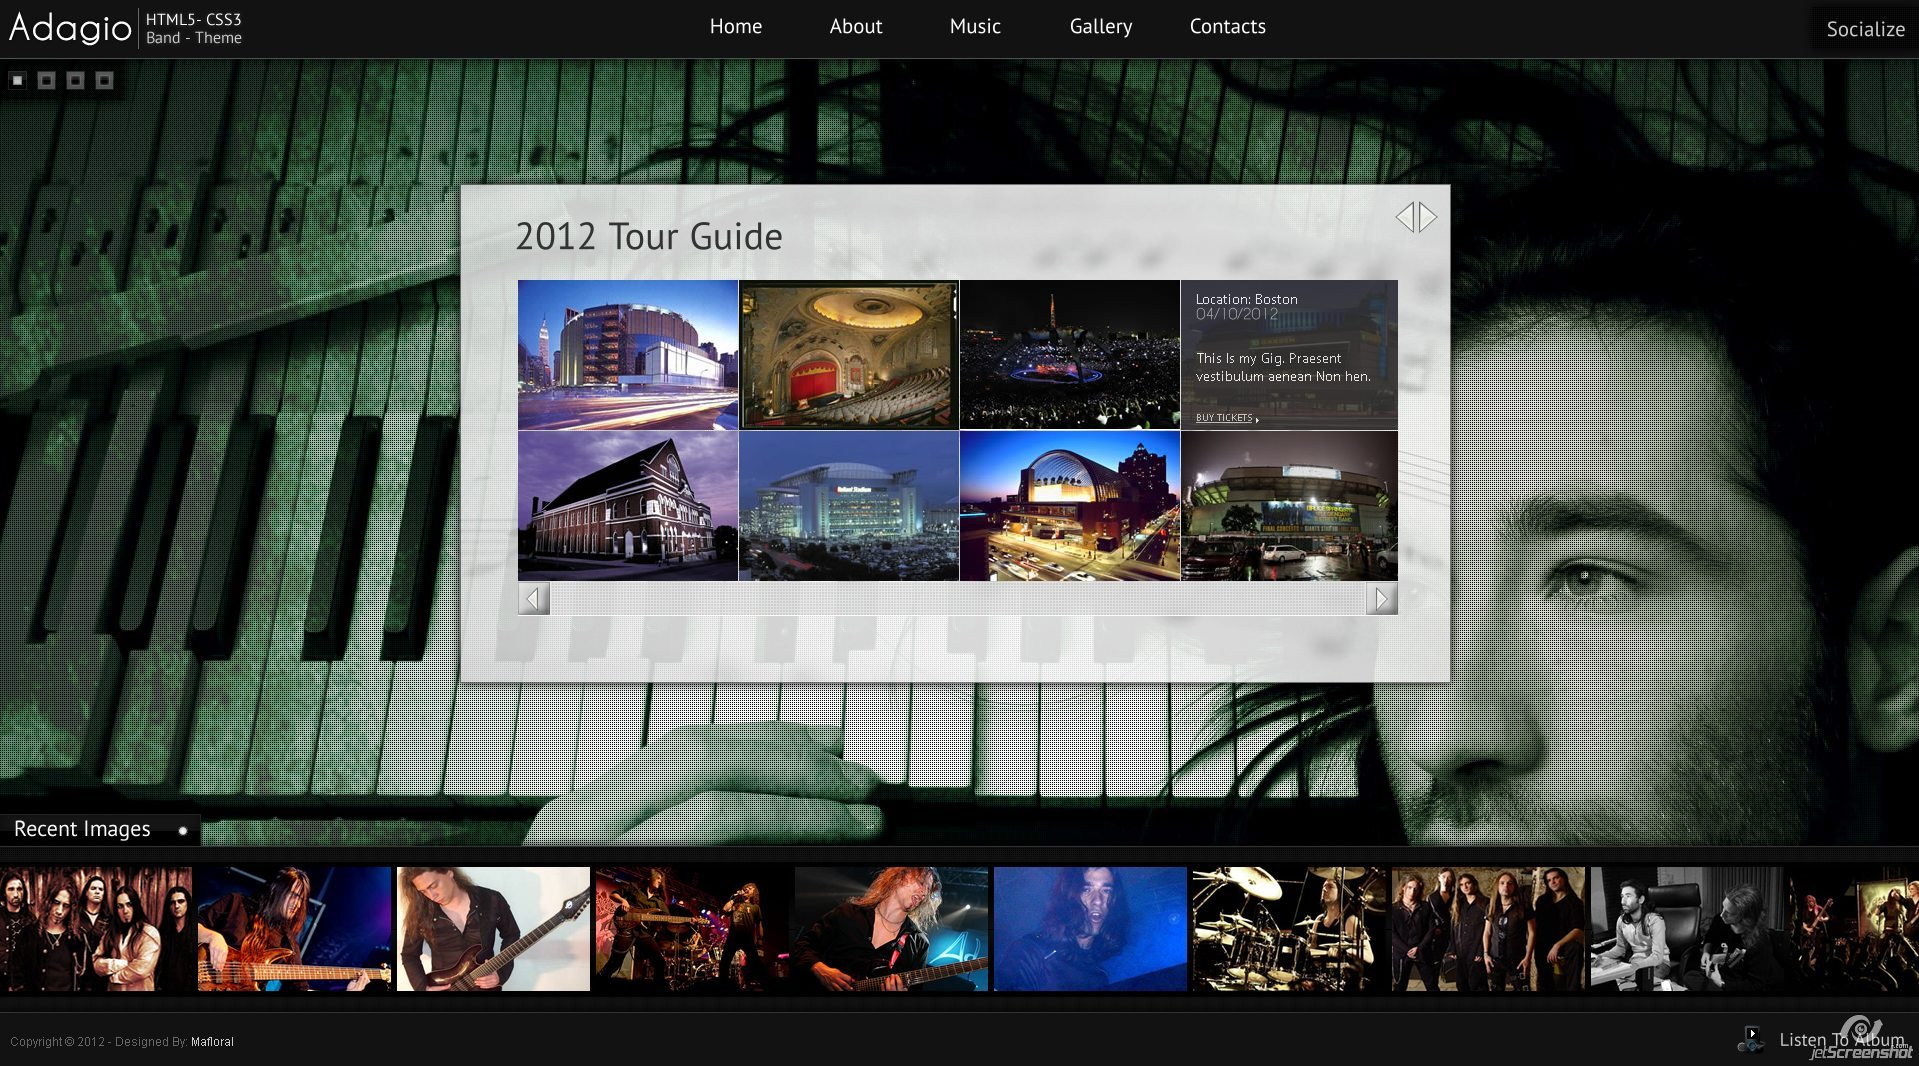 Adagio Musician Template - HTML5 - CSS3 - Tour Page  - I used another carousel for the tour page to display the places maybe cities your band is playing. On hover it displays some textual info about the gigs. Also with navigation arrows to cycle through the images.